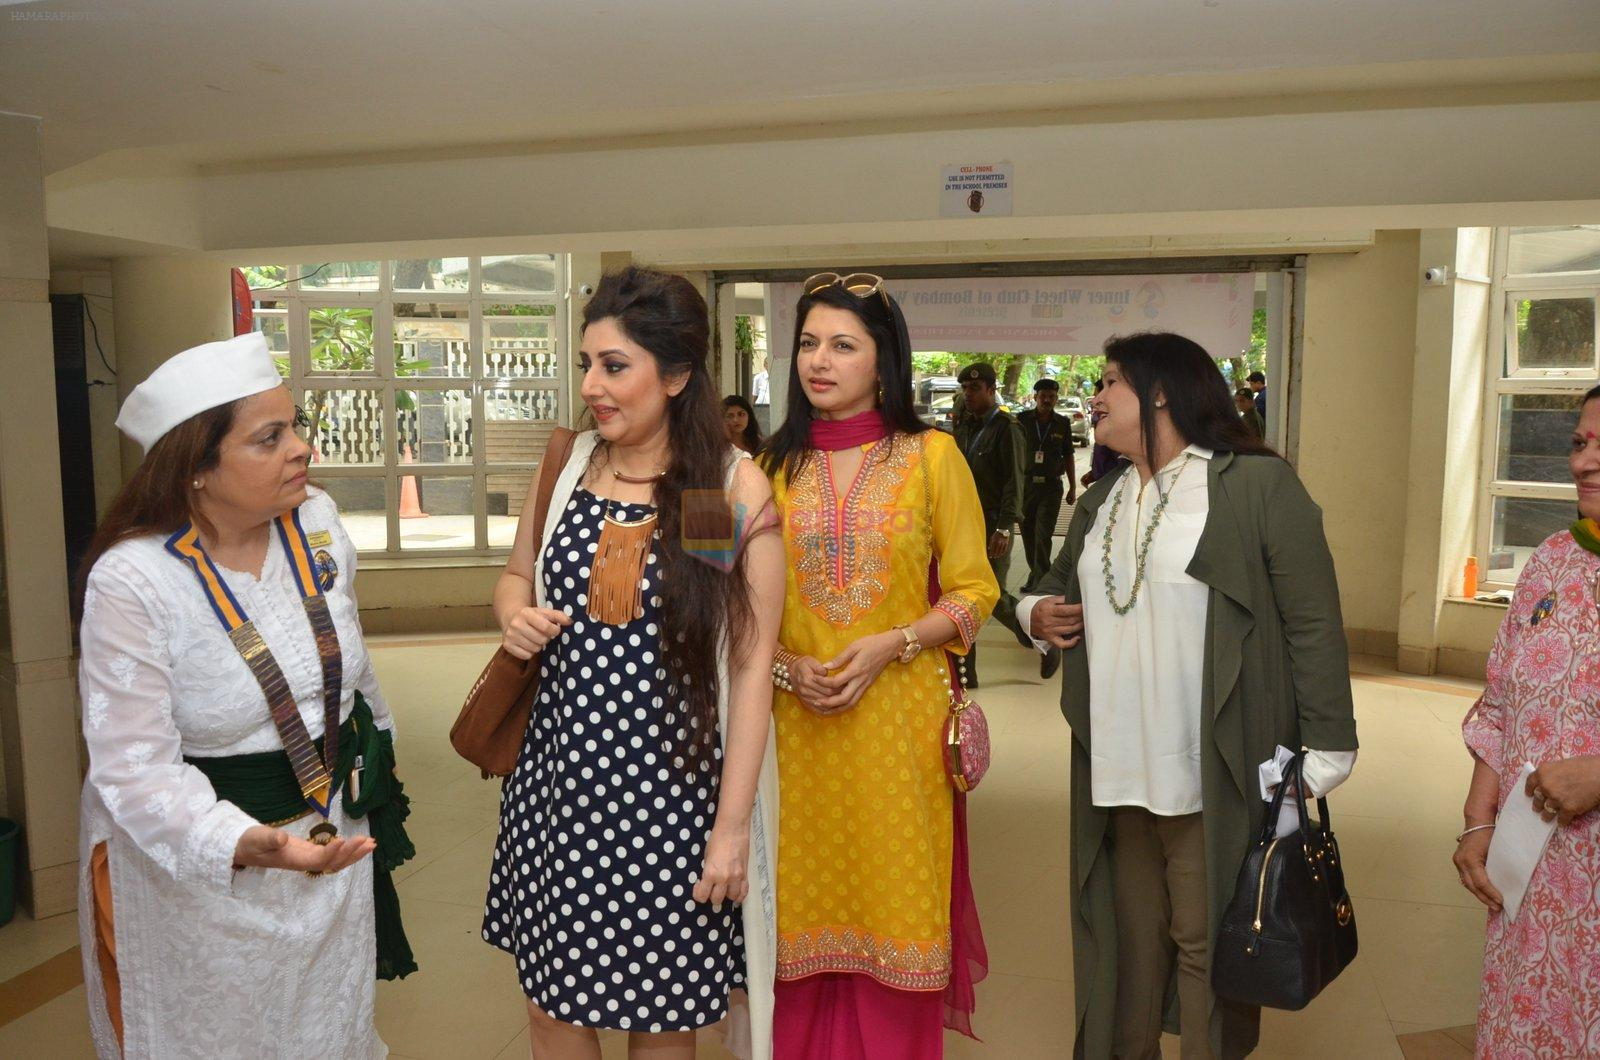 Bhagyashree, Archana Kochhar inaugurated the Juhu Organic Farmer's Market on 14th Aug at Jamnabai Narsee School